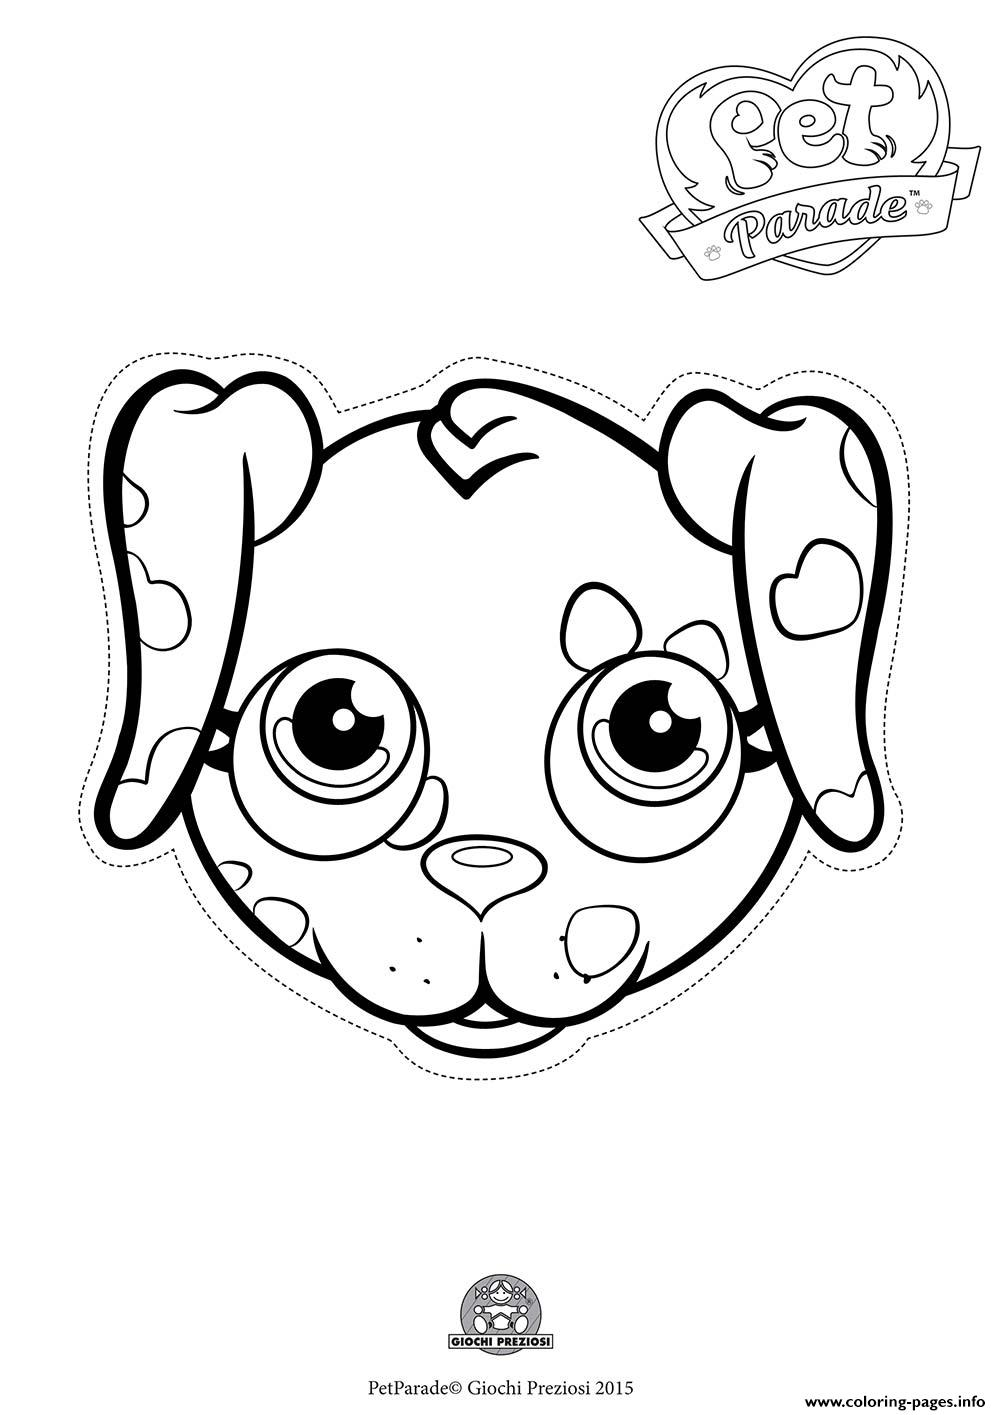 Pet Parade Cute Dog Dalmatian 2 coloring pages